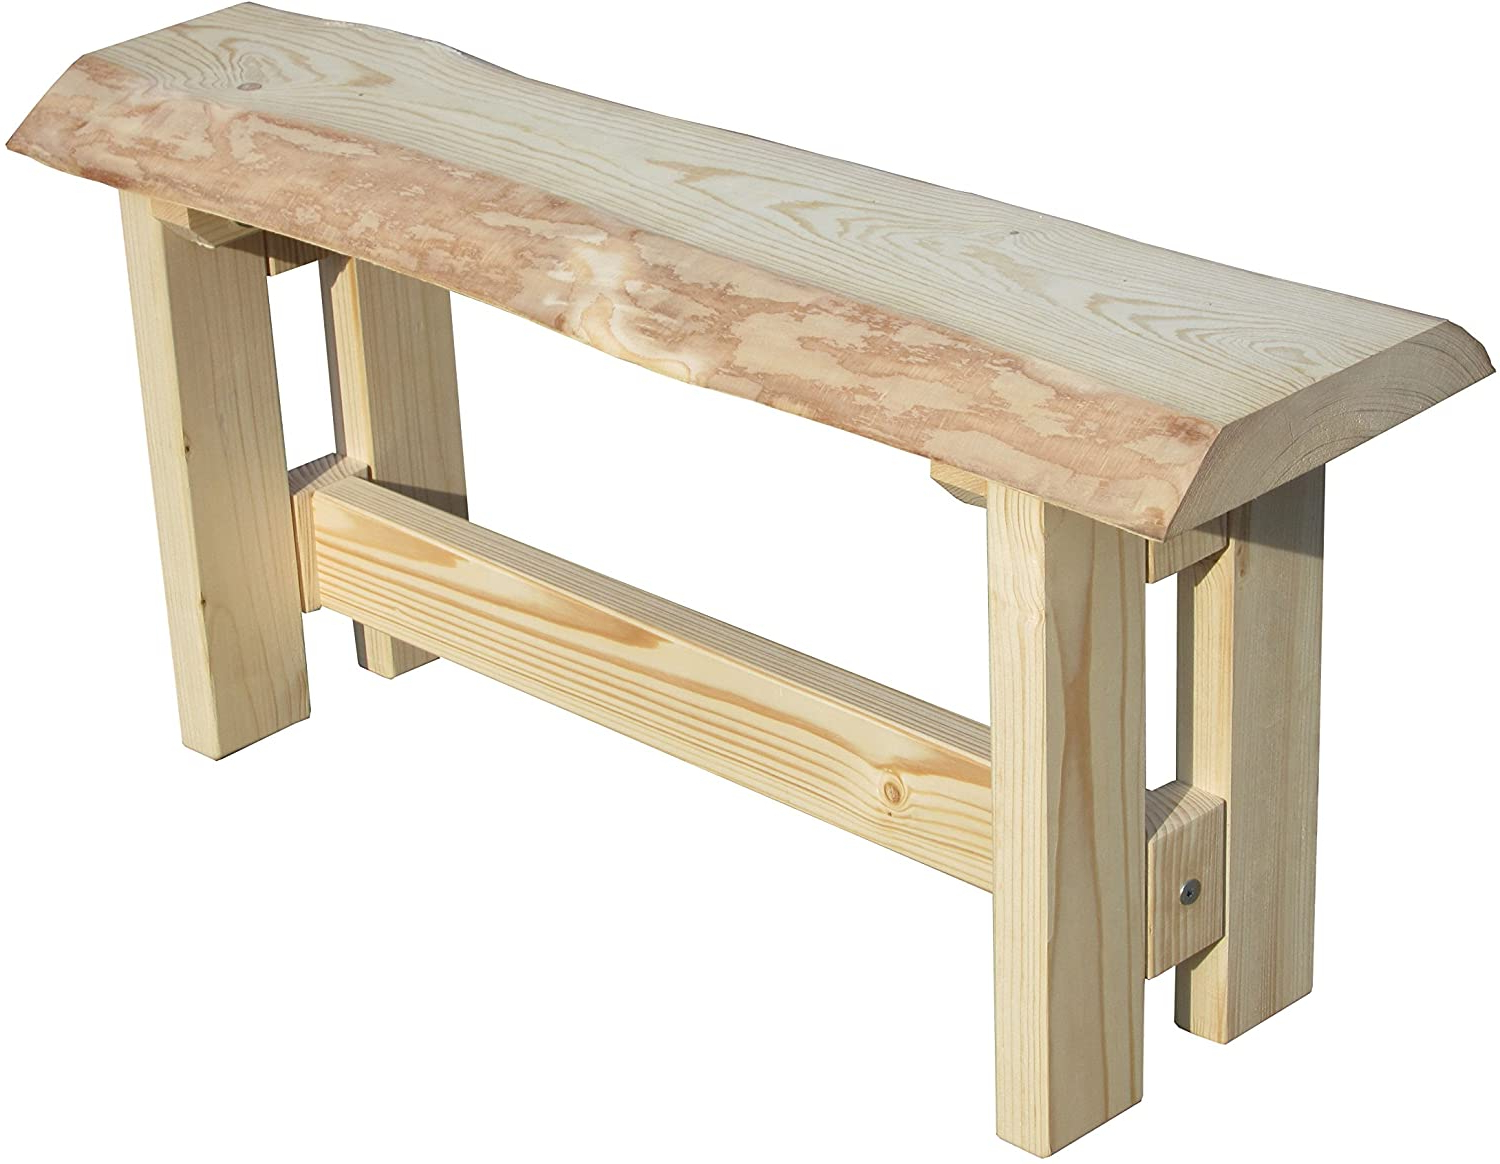 Farm Tree Trunk Garden Bench 120 Cm Intended For Newest Ahana Wooden Garden Benches (View 16 of 30)